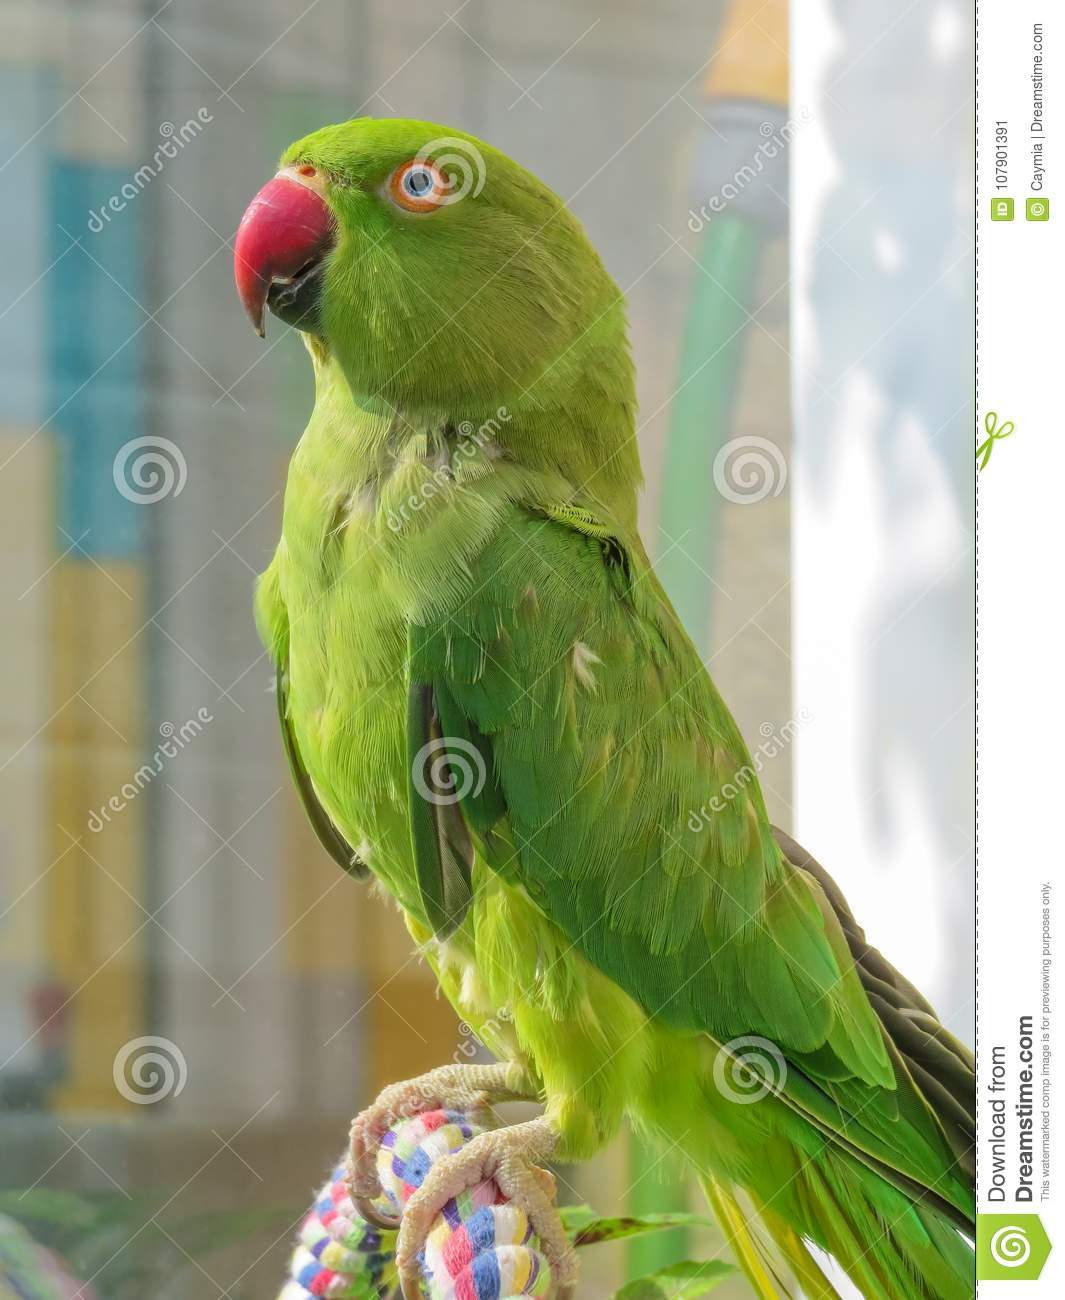 Indian Ringneck Parakeet Green Parrot With Red Beak Stock Image Image Of Feathers Colorful 107901391